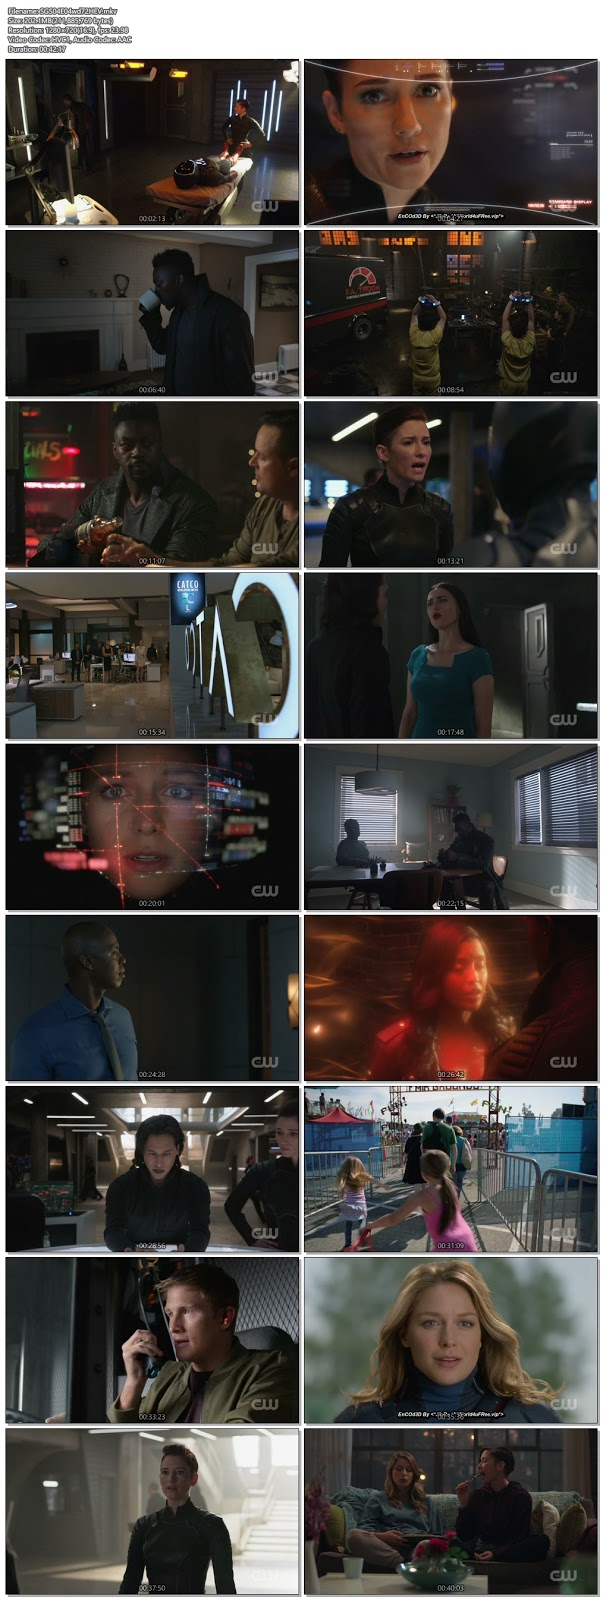 Supergirl S04 Episode 04 720p HDTV 200MB ESub x265 HEVC , hollwood tv series Supergirl S01 Episode 04 720p hdtv tv show hevc x265 hdrip 250mb 270mb free download or watch online at world4ufree.vip